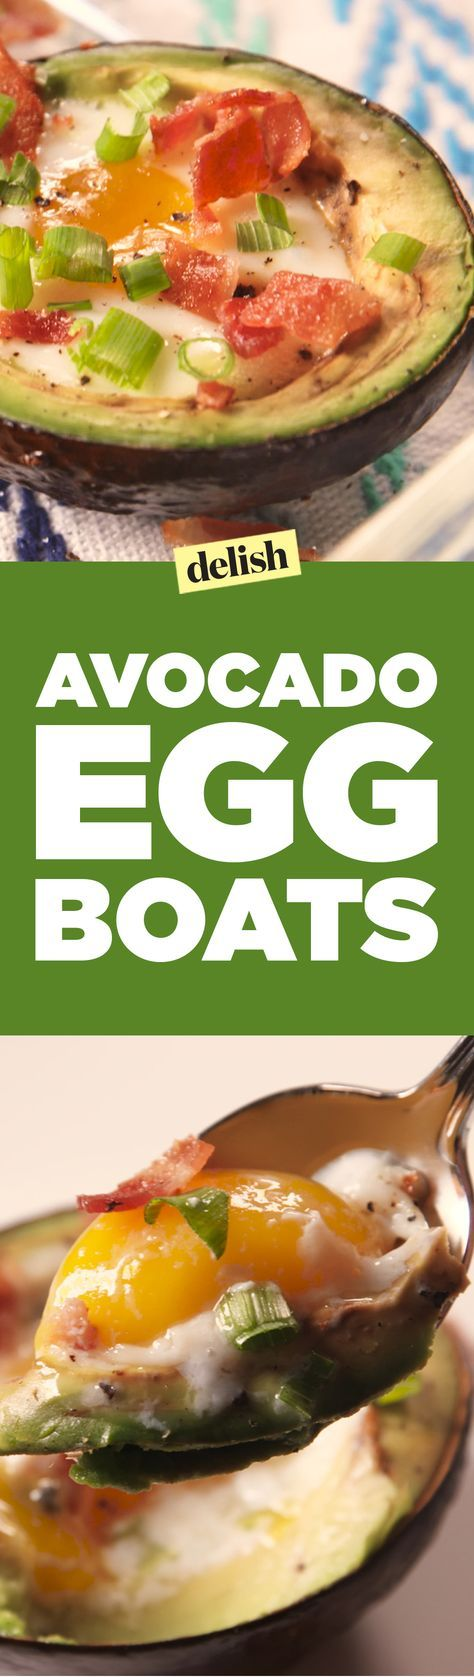 Avocado egg boats are full of healthy fats and protein, plus they taste bomb…